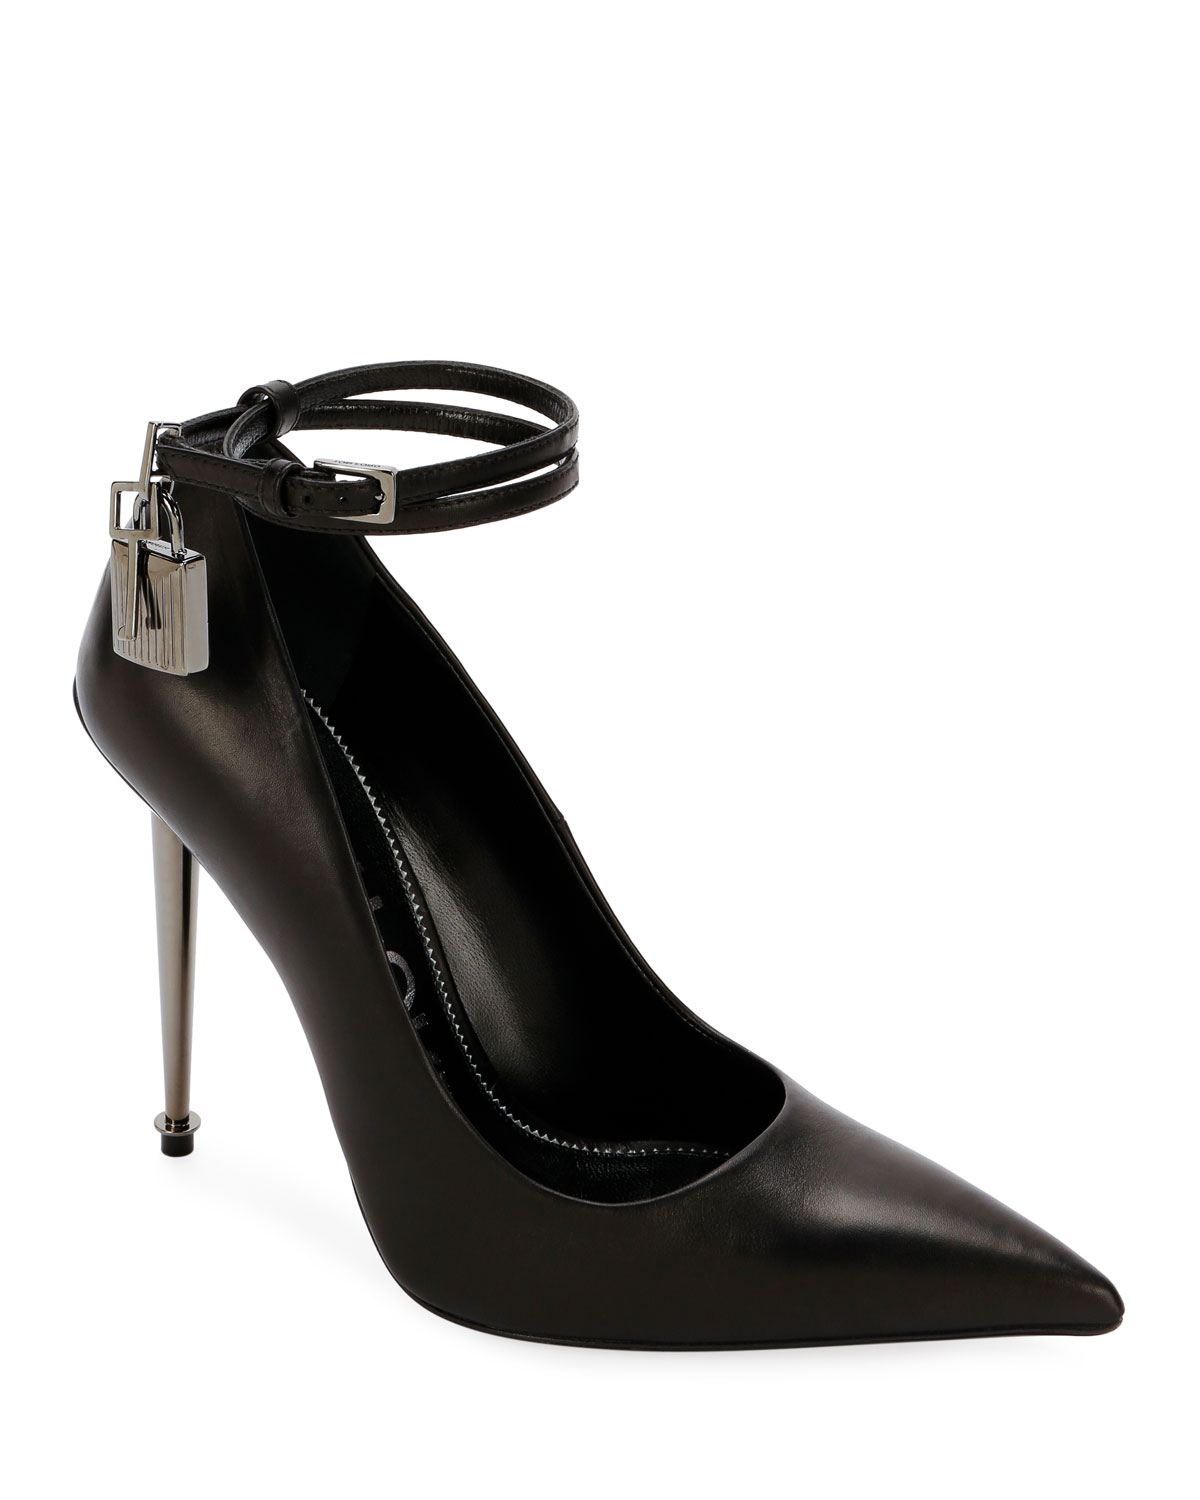 d515d2cb3f TOM FORD Leather Lock 105mm Pumps | Neiman Marcus